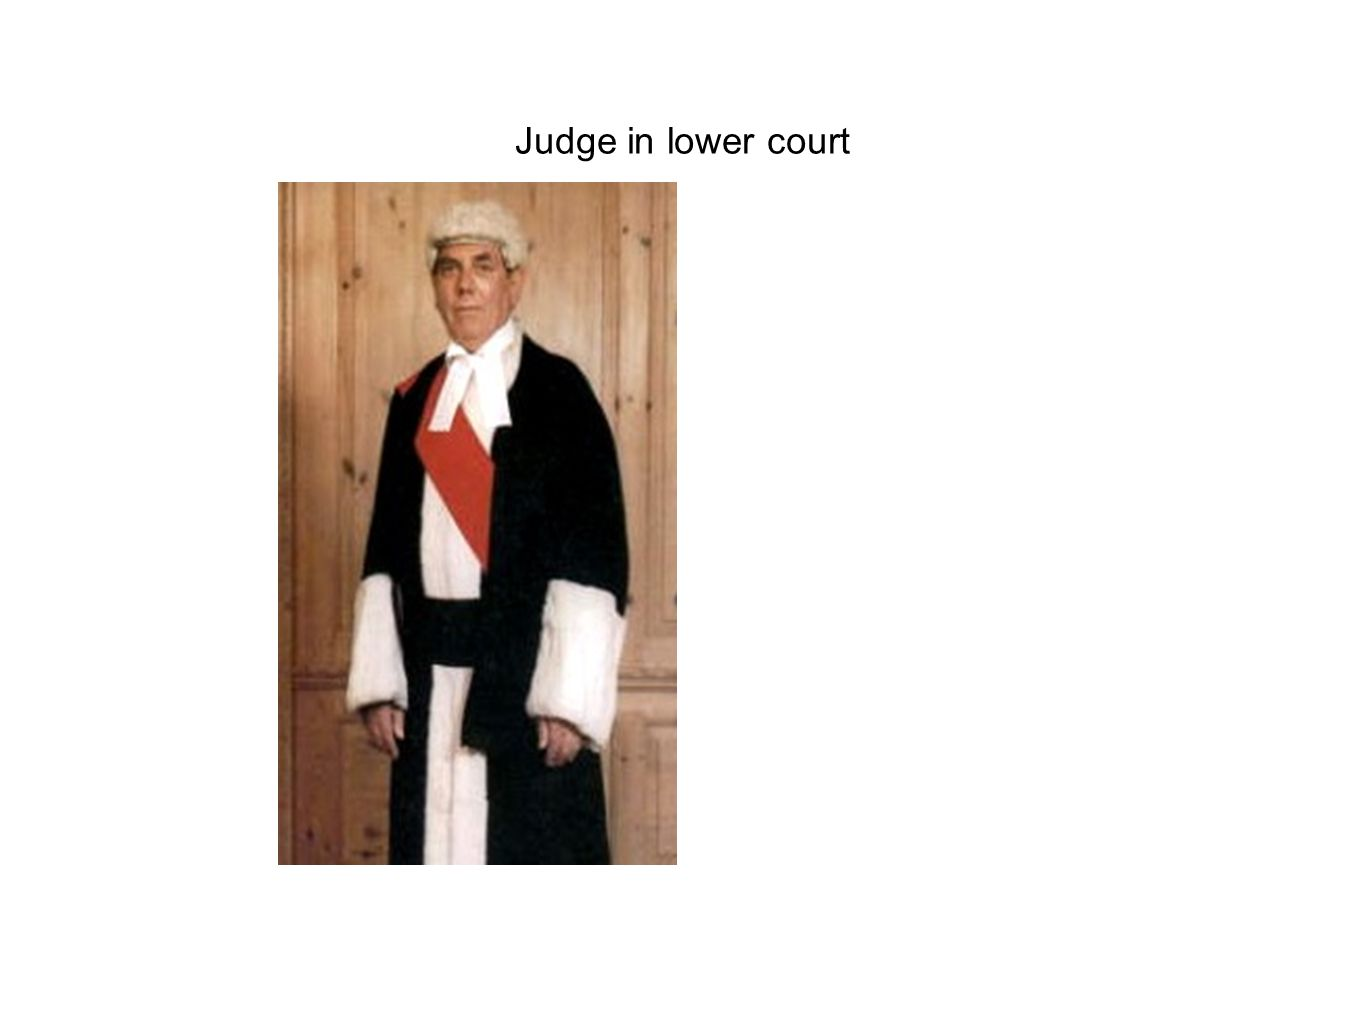 Judge in lower court